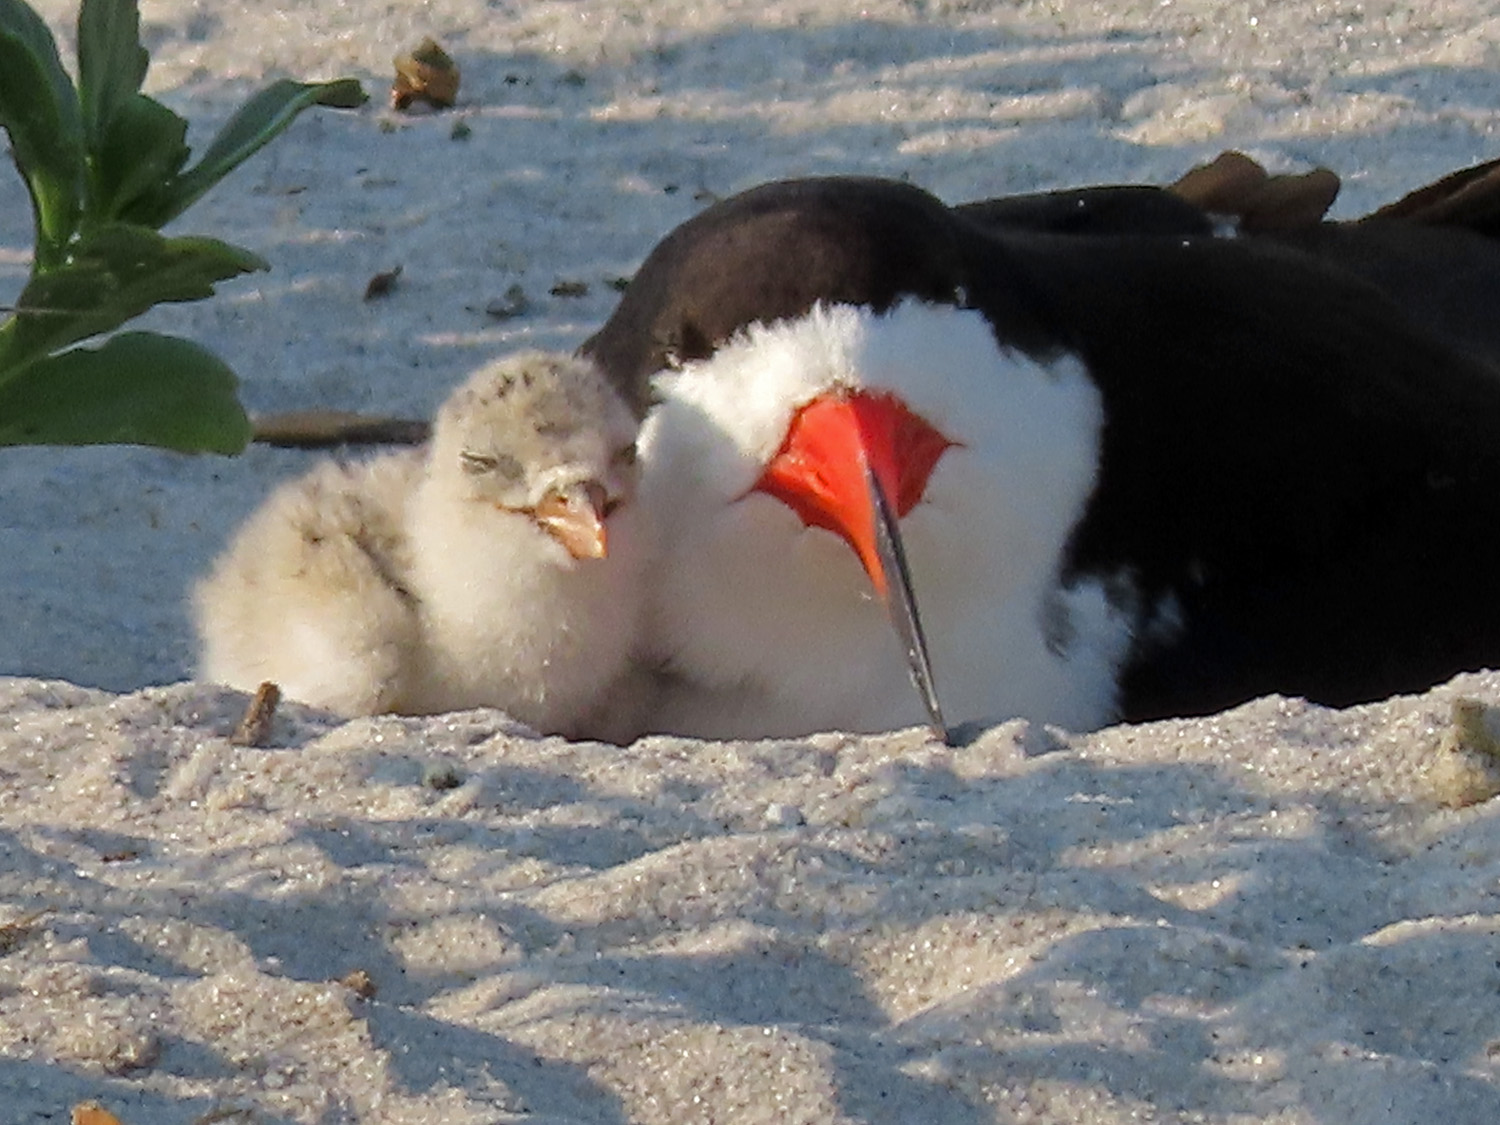 Black skimmer mother with chick, July 25, 2019, Nickerson Beach, Long Island